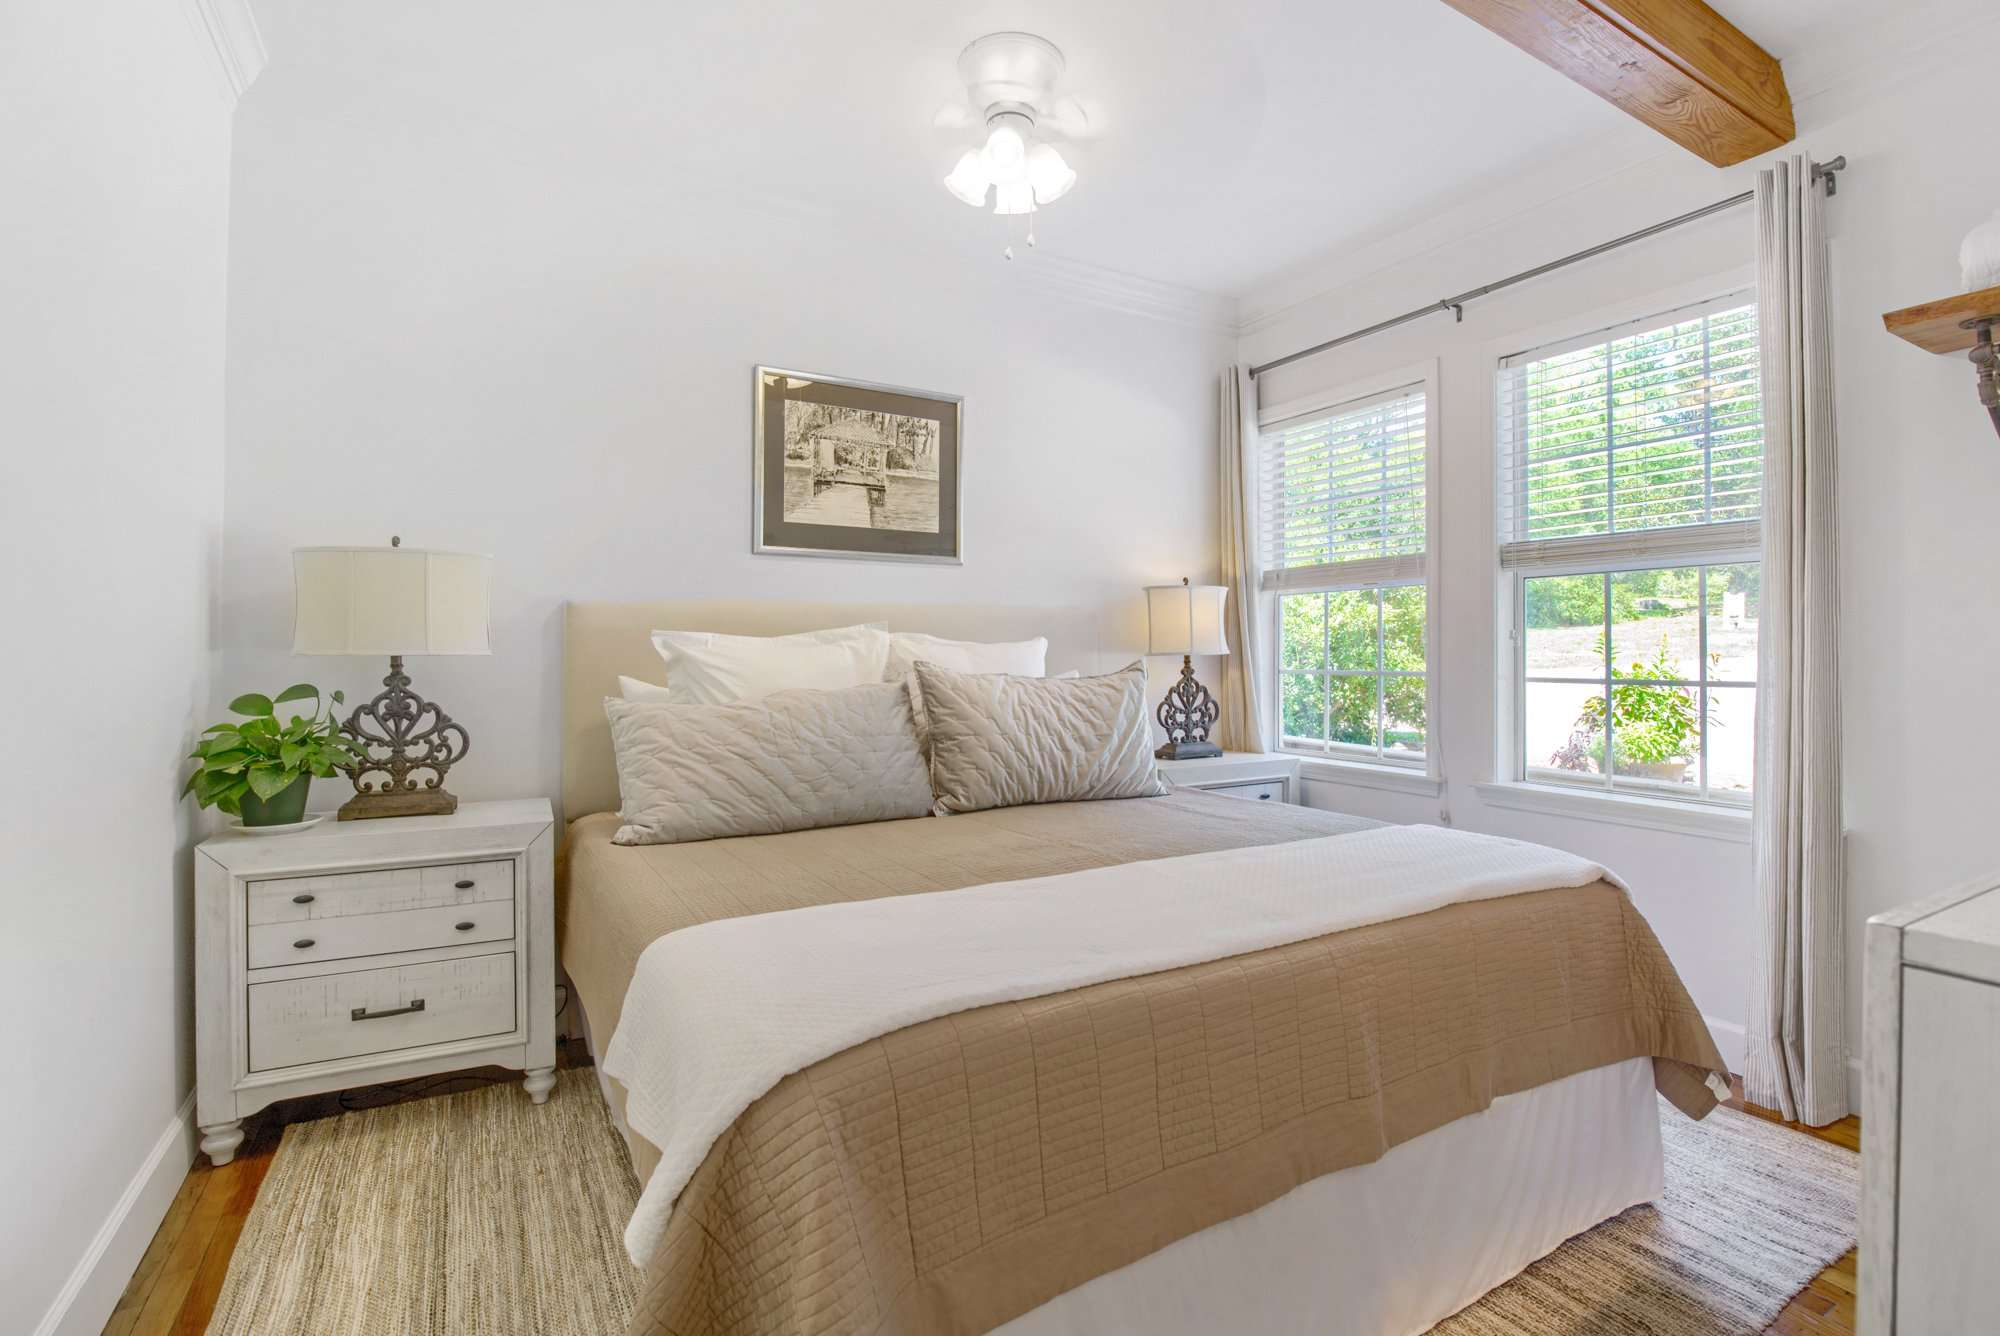 New Orleans Bedroom at Jubilee Suites in Fairhope, AL